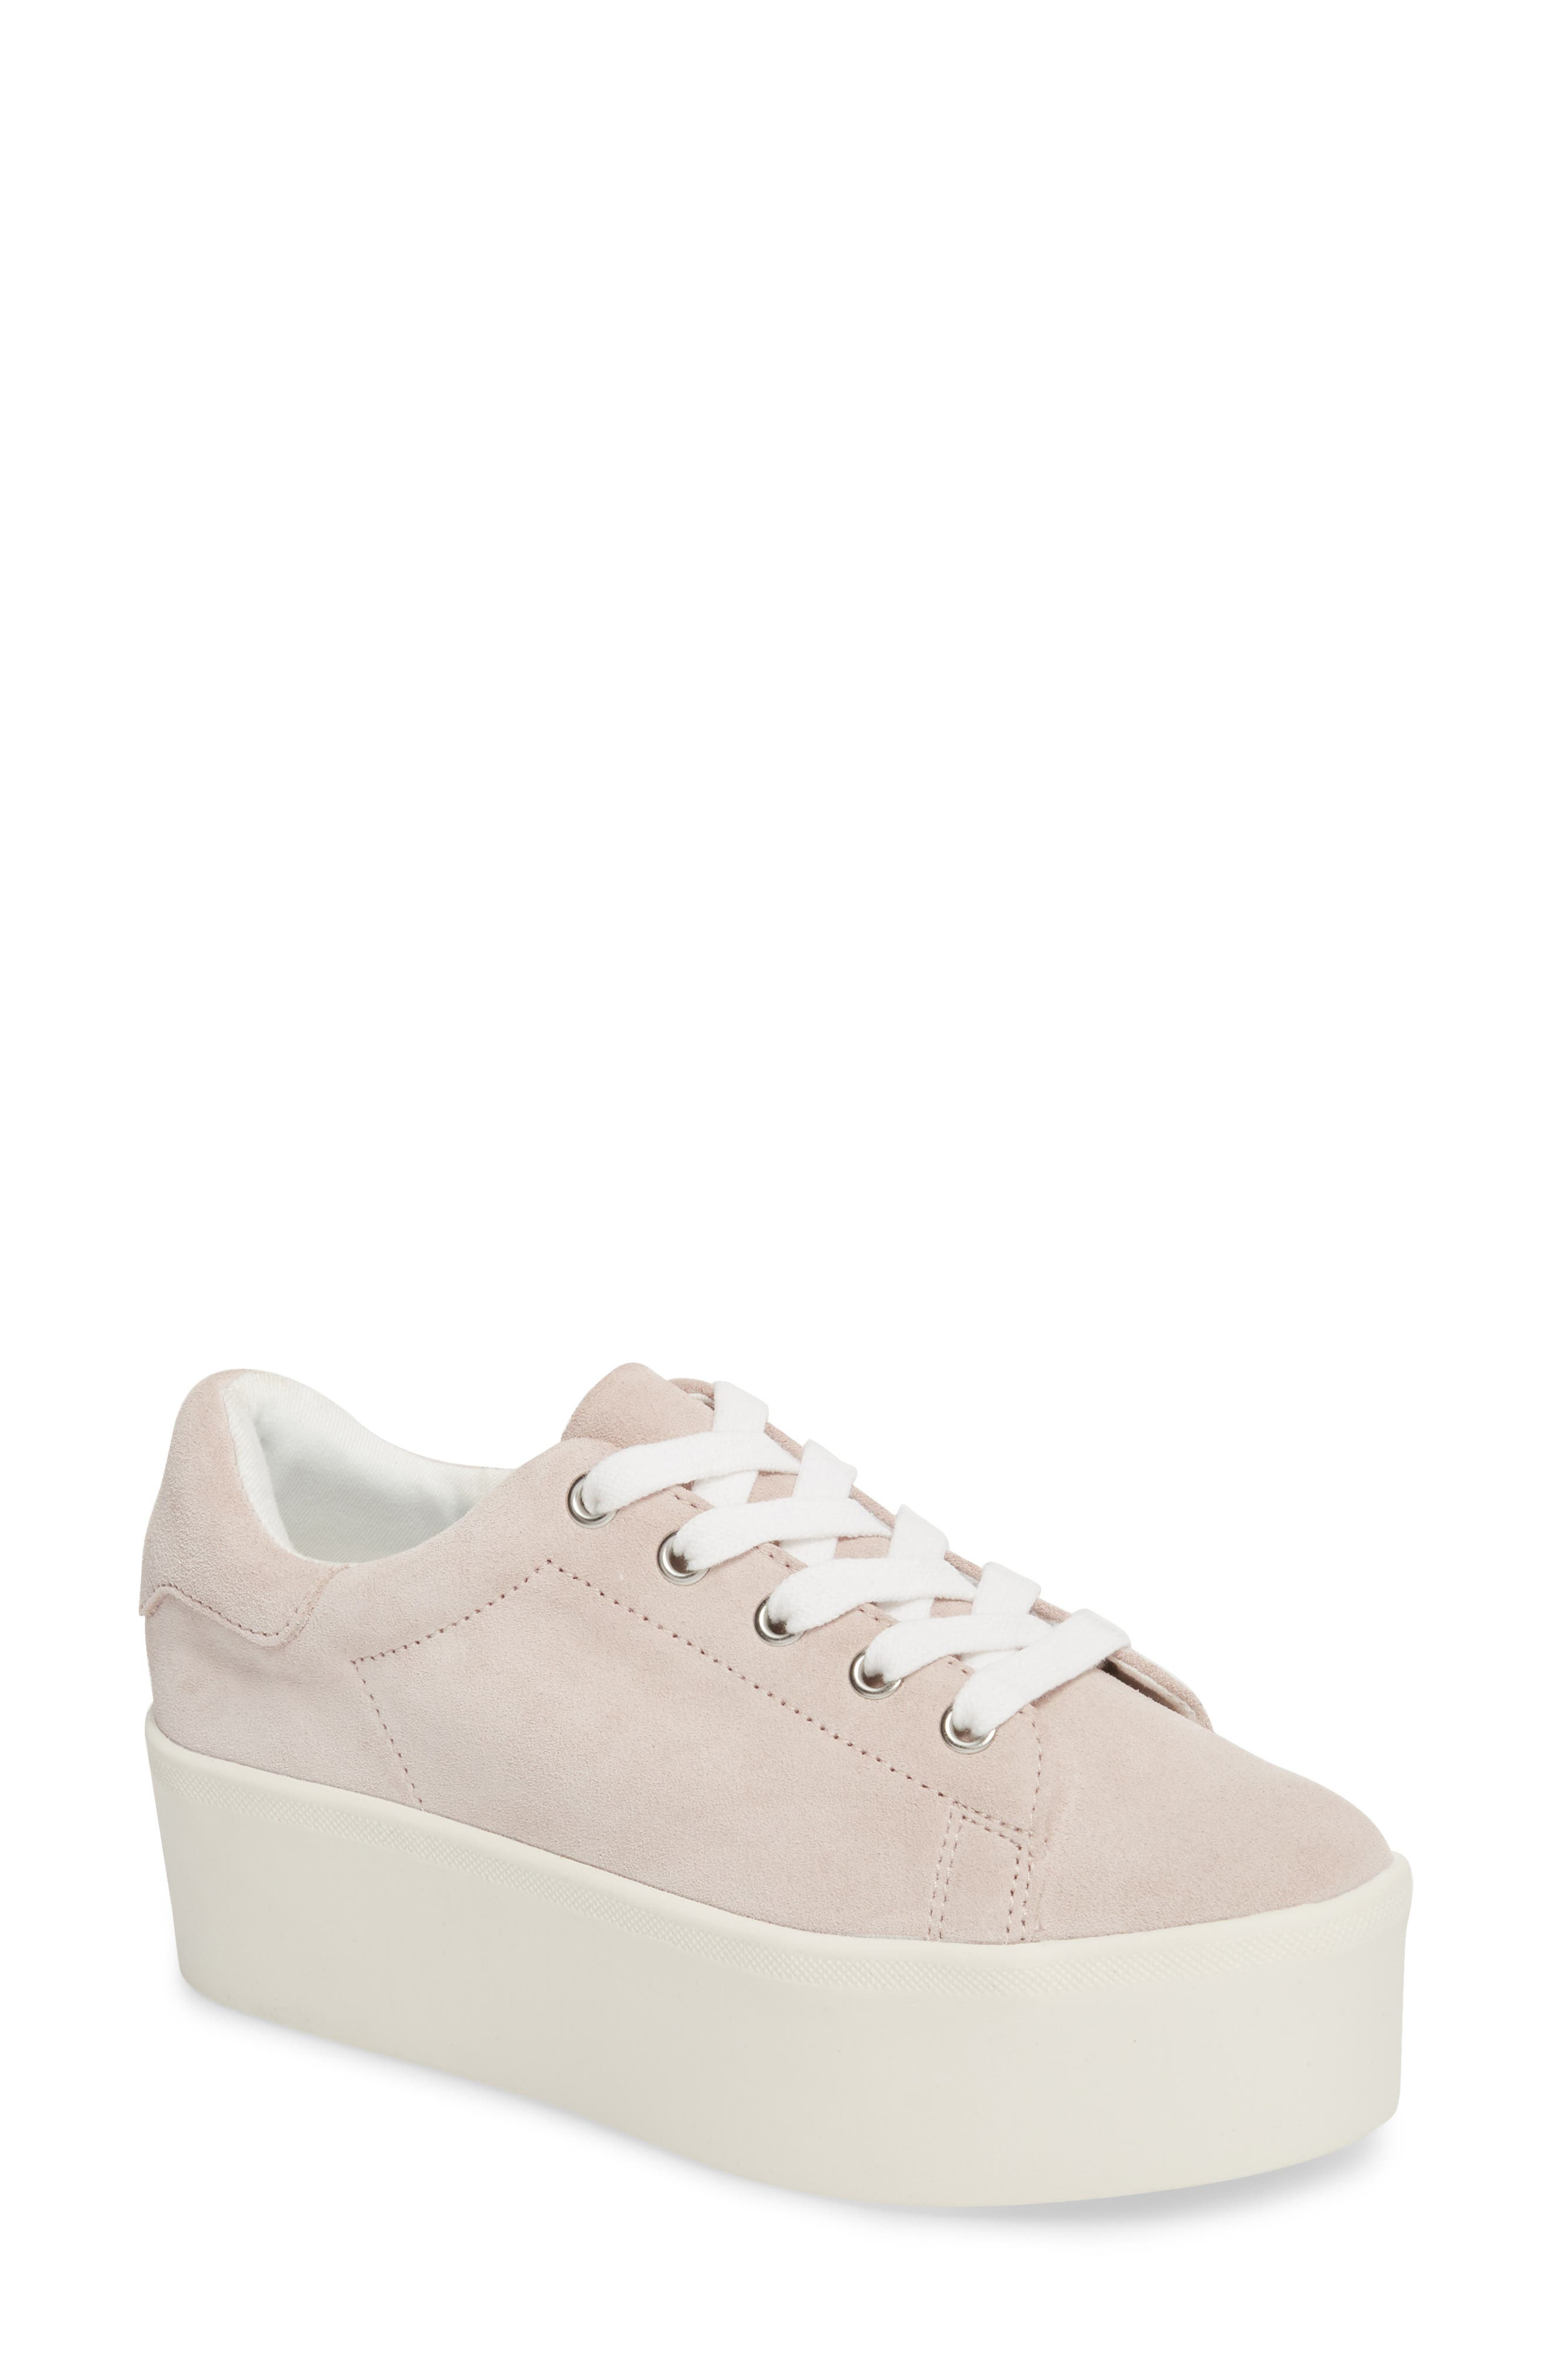 Palmer Sneaker,                             Main thumbnail 1, color,                             Pink Suede